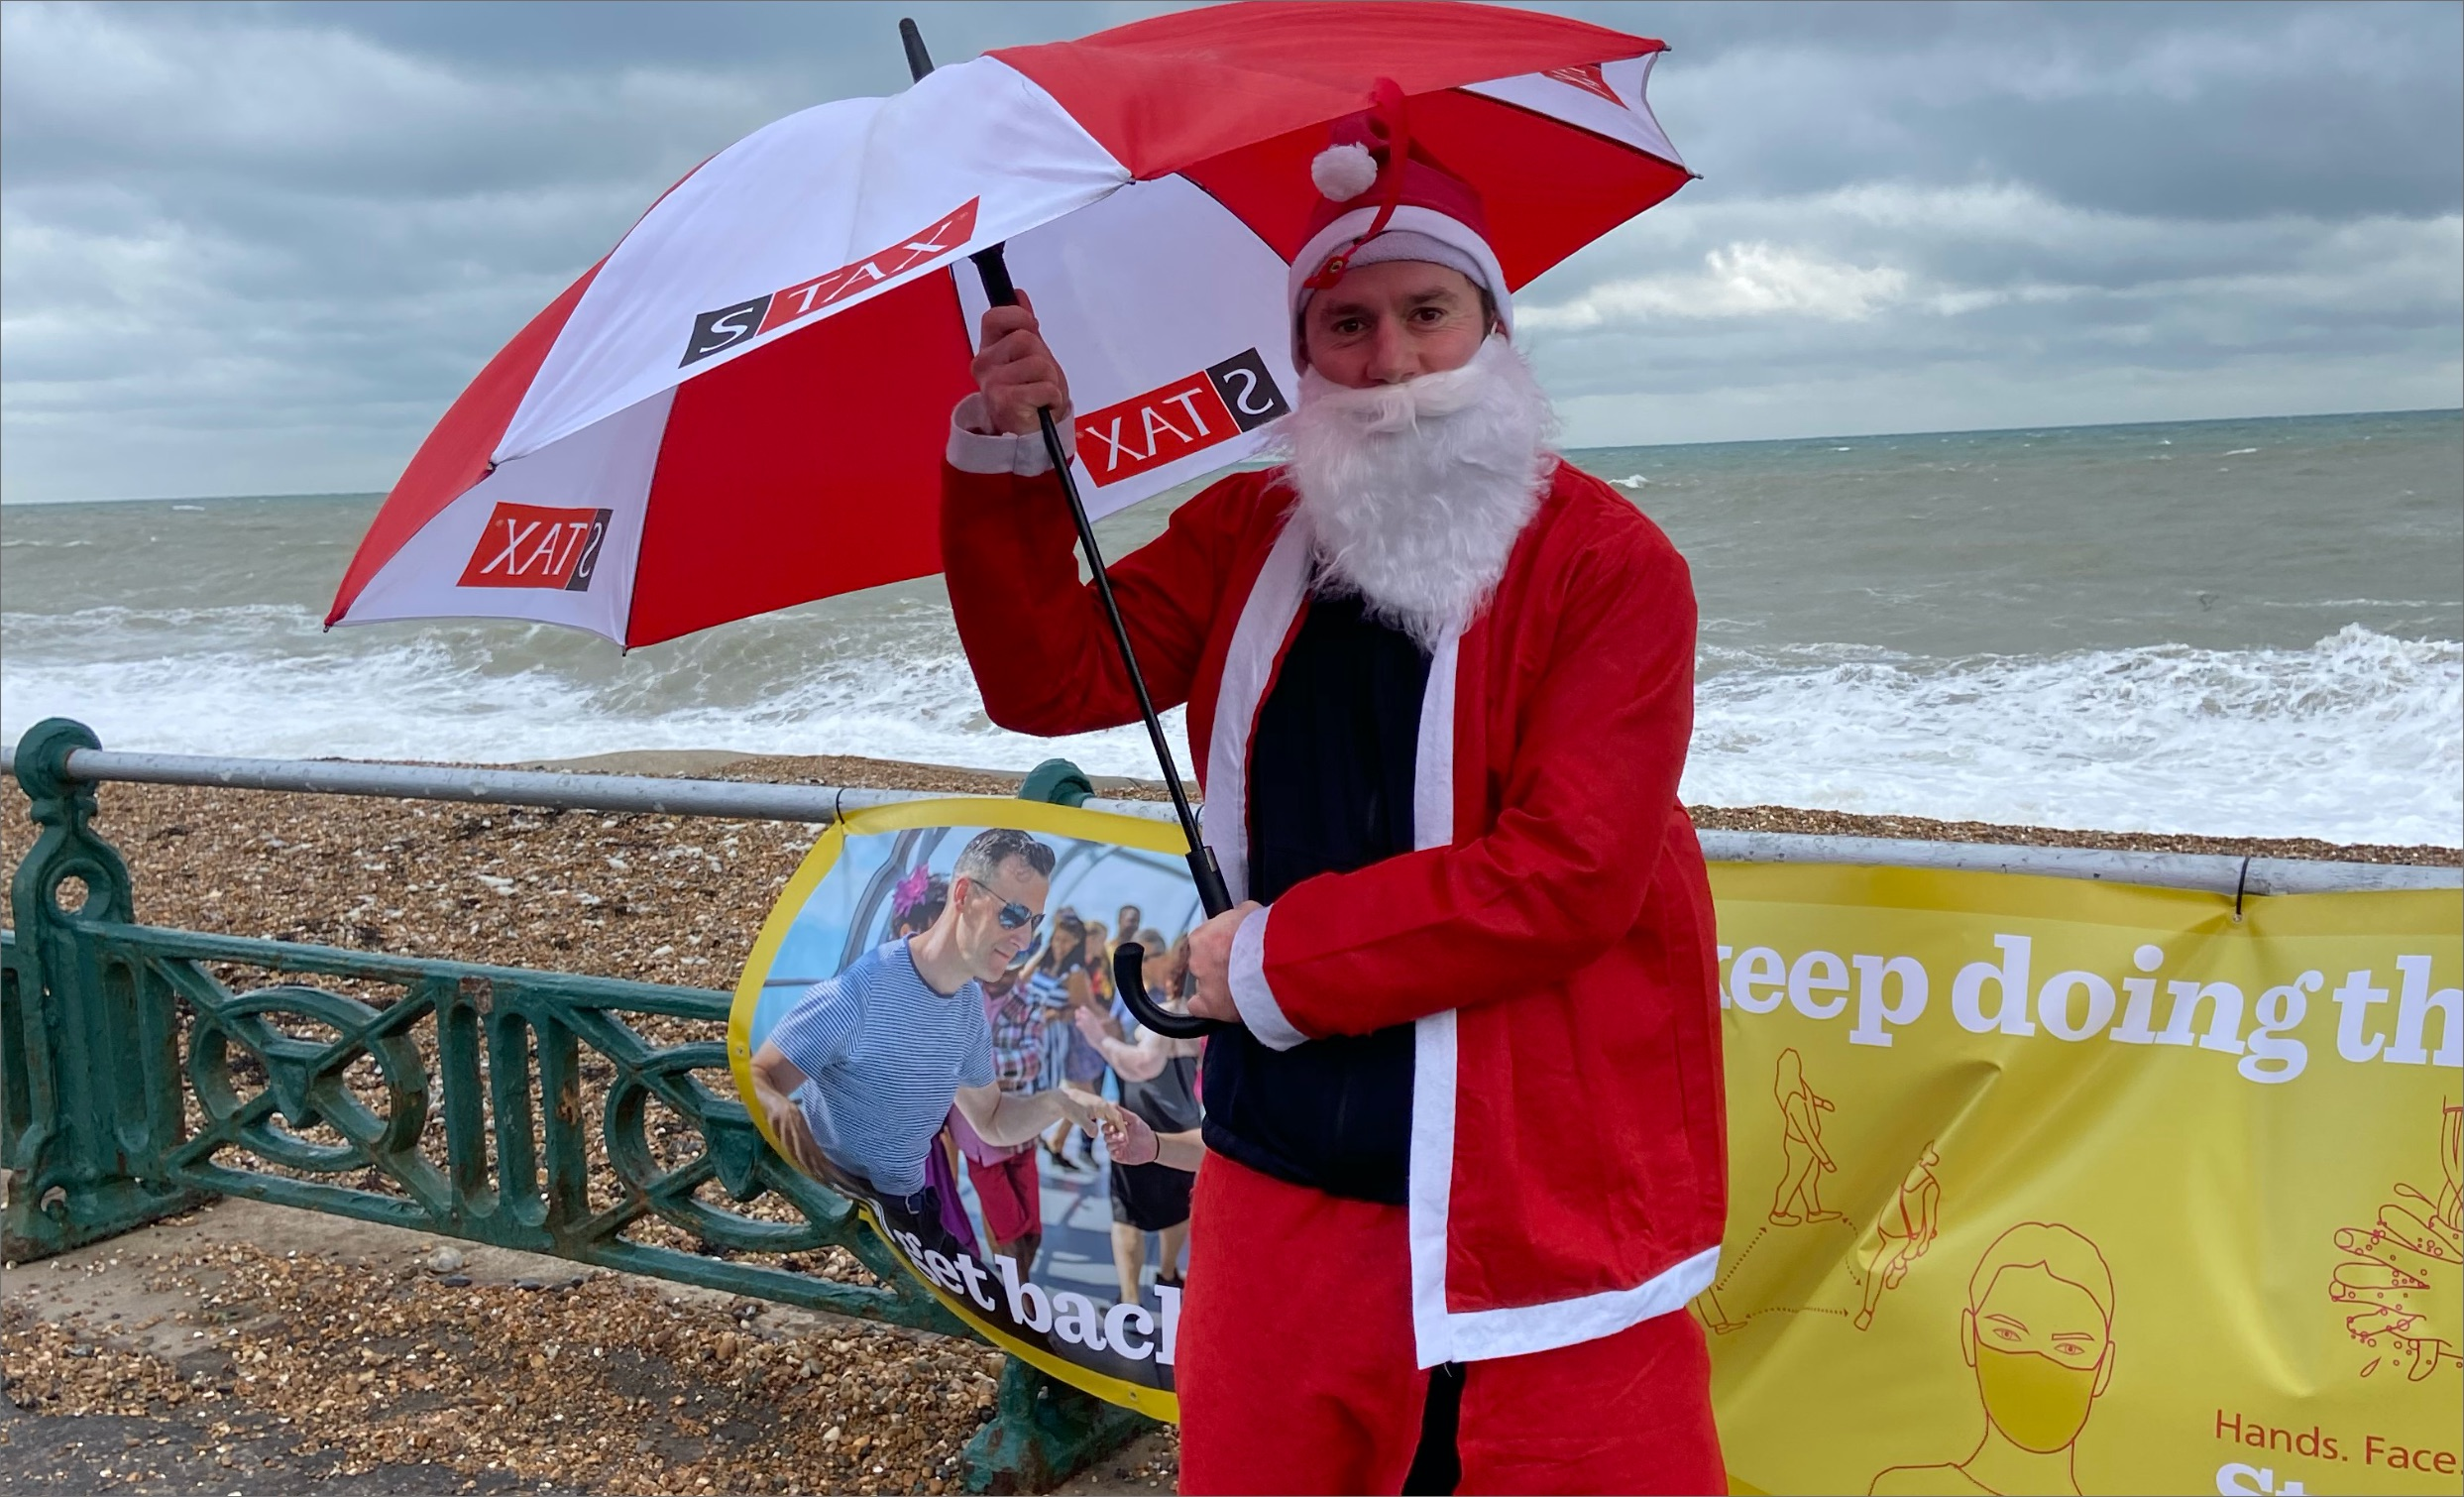 The annual Santa Dash that takes place on Brighton seafront had been cancelled this year due to the pandemic however, organisers had said if participants still wanted to complete the run that they could do so solo.